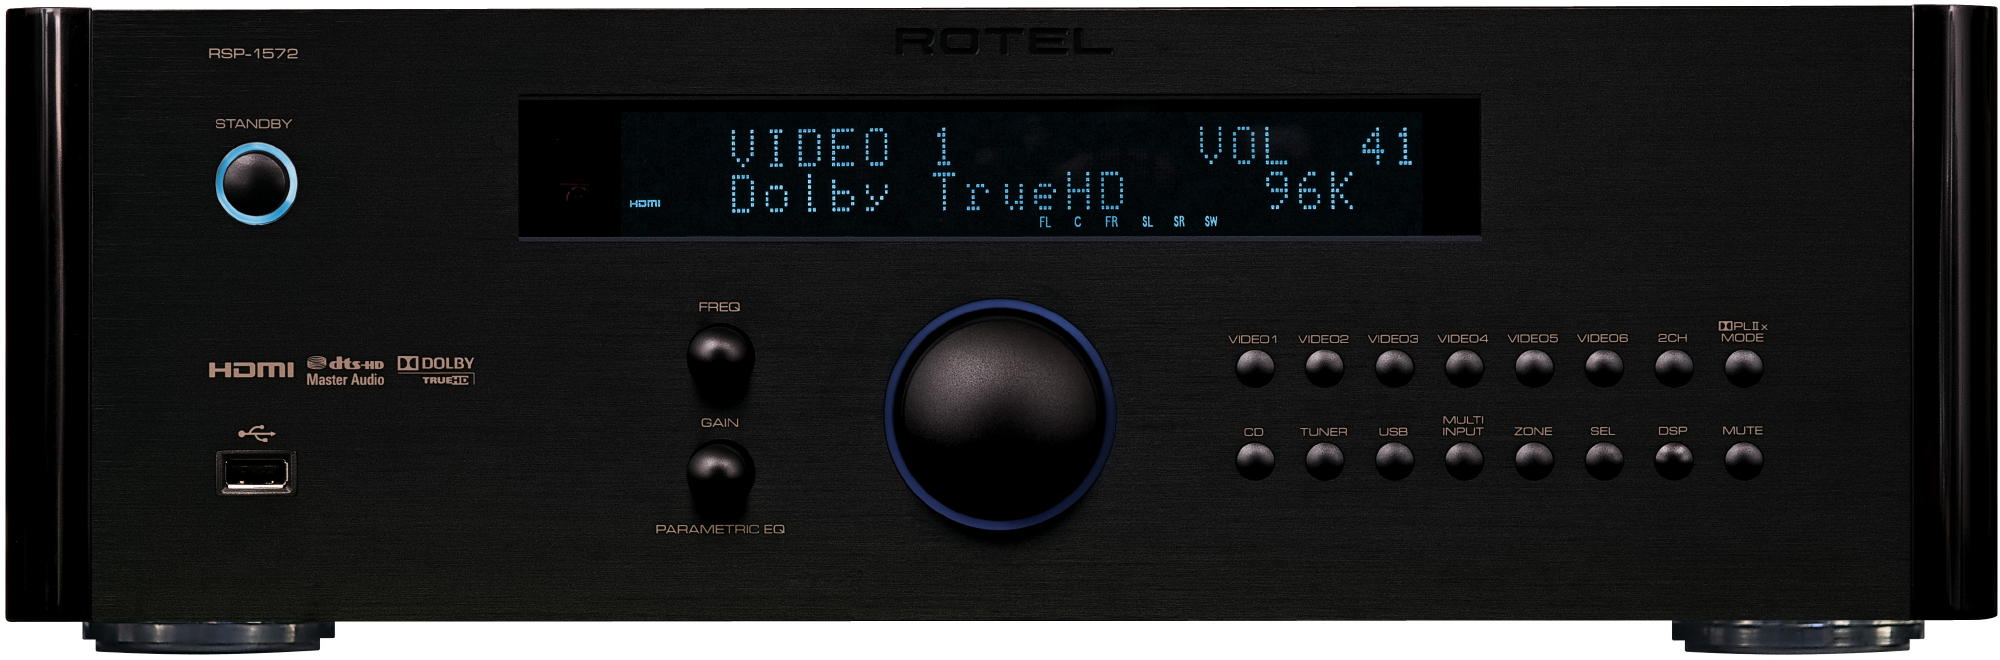 rotel RSP1572 Front